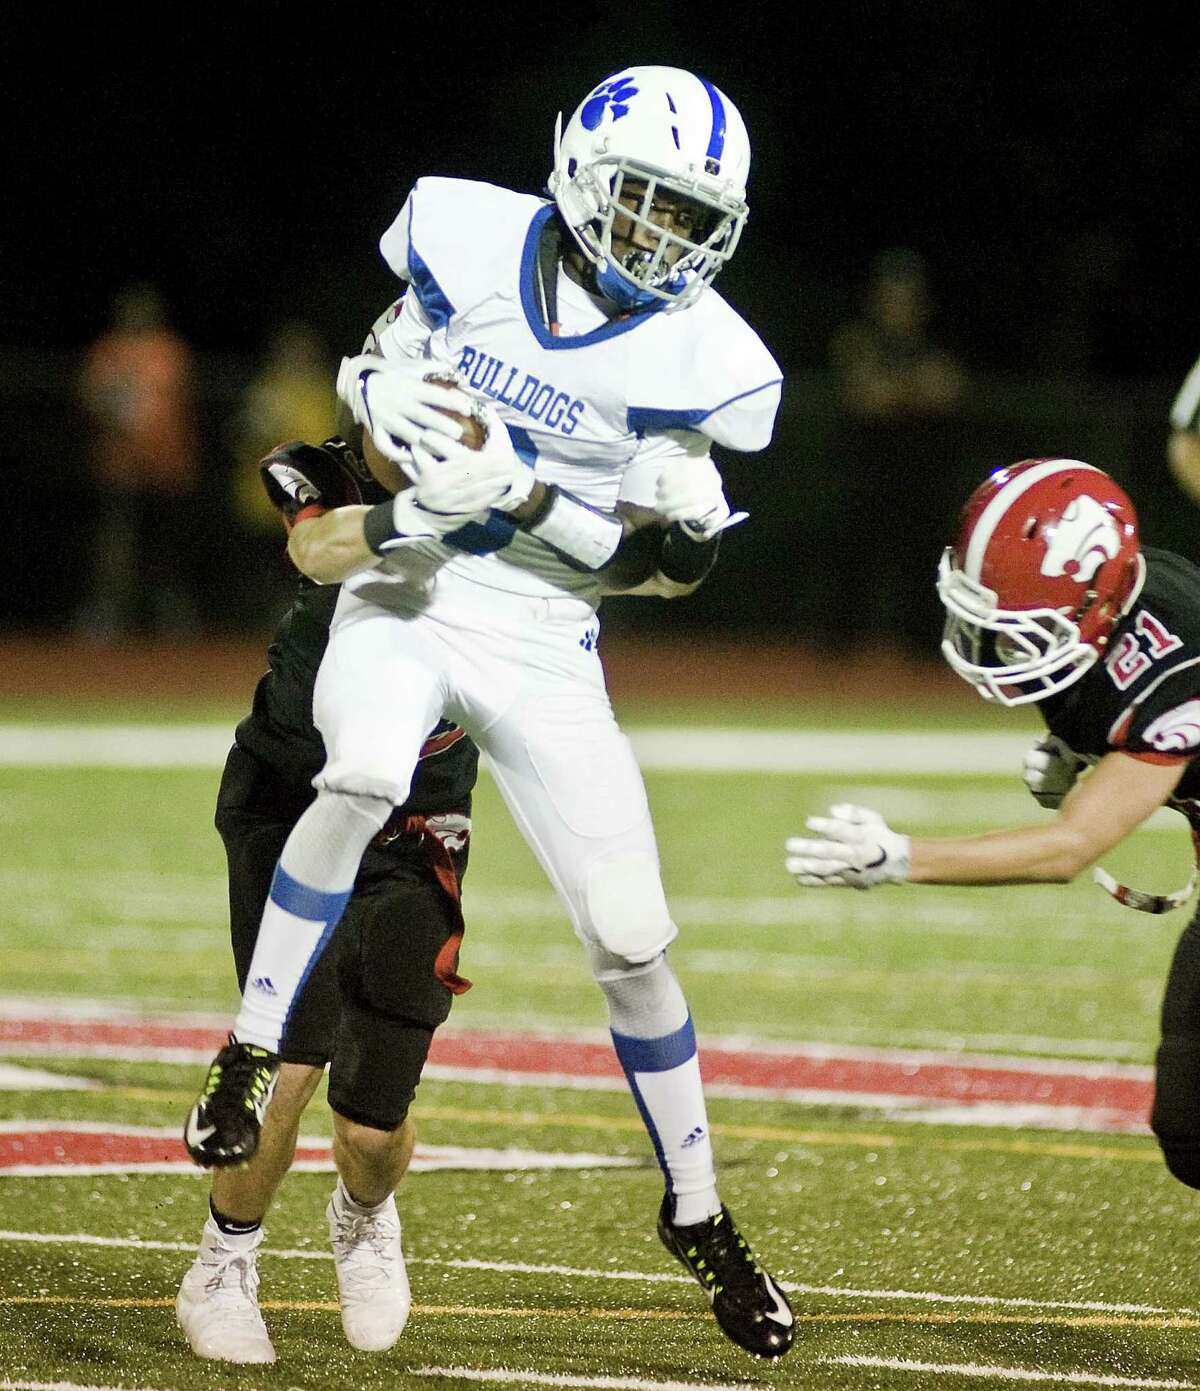 Bunnell High School's Elijah Alexandre comes down with the reception in a game against Masuk High School, played at Masuk. Friday, Sept. 8, 2017